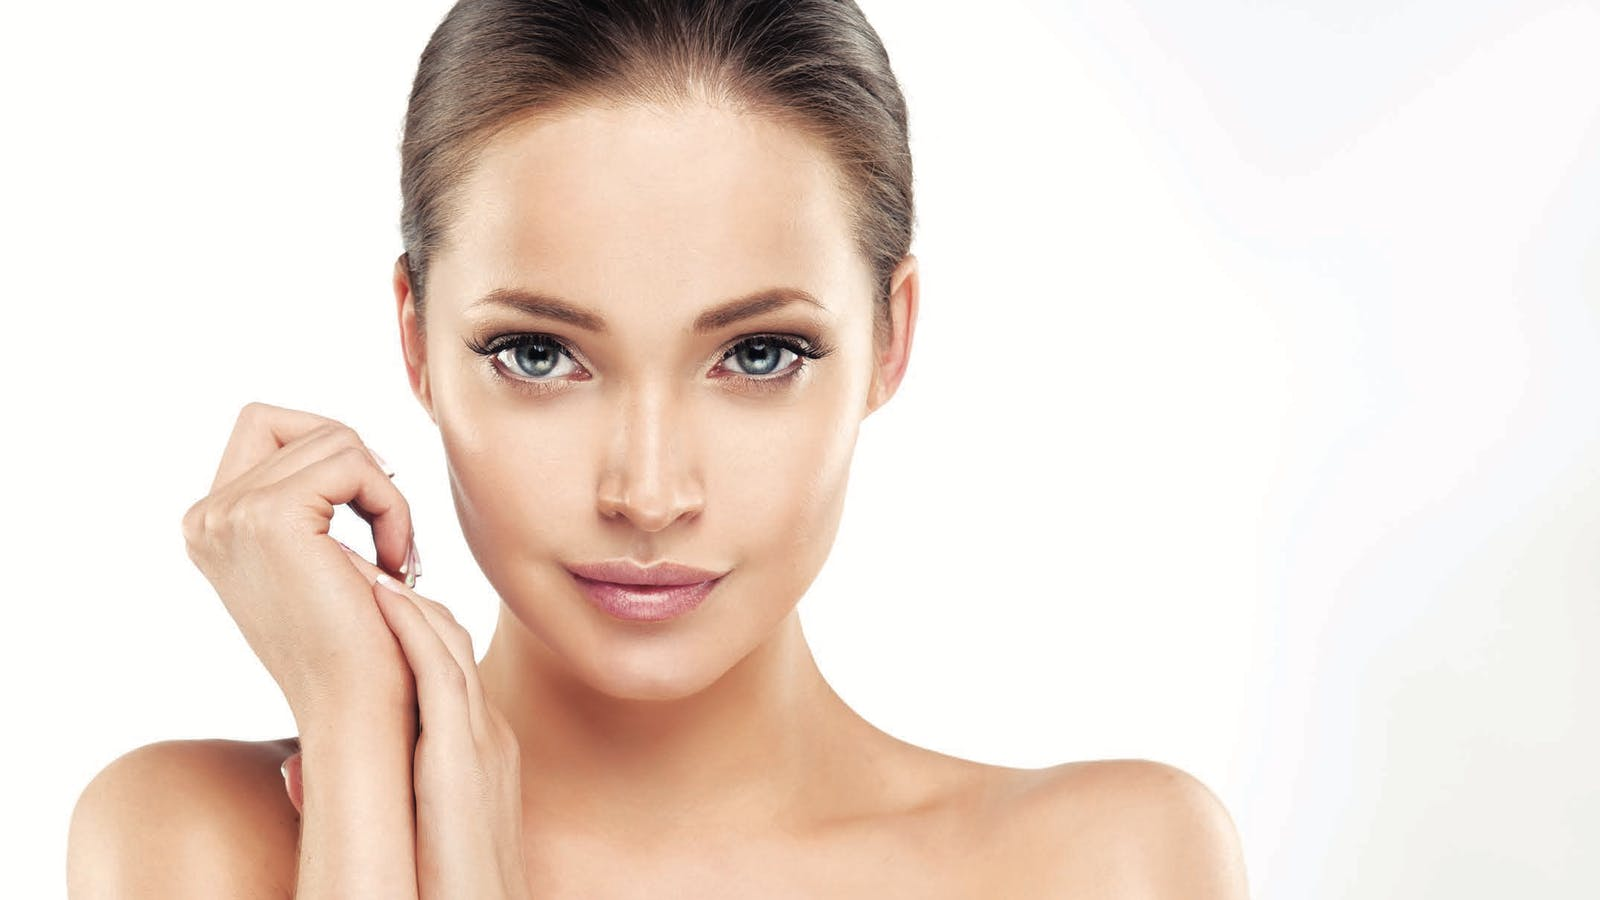 Collagen: How It Helps The Skin